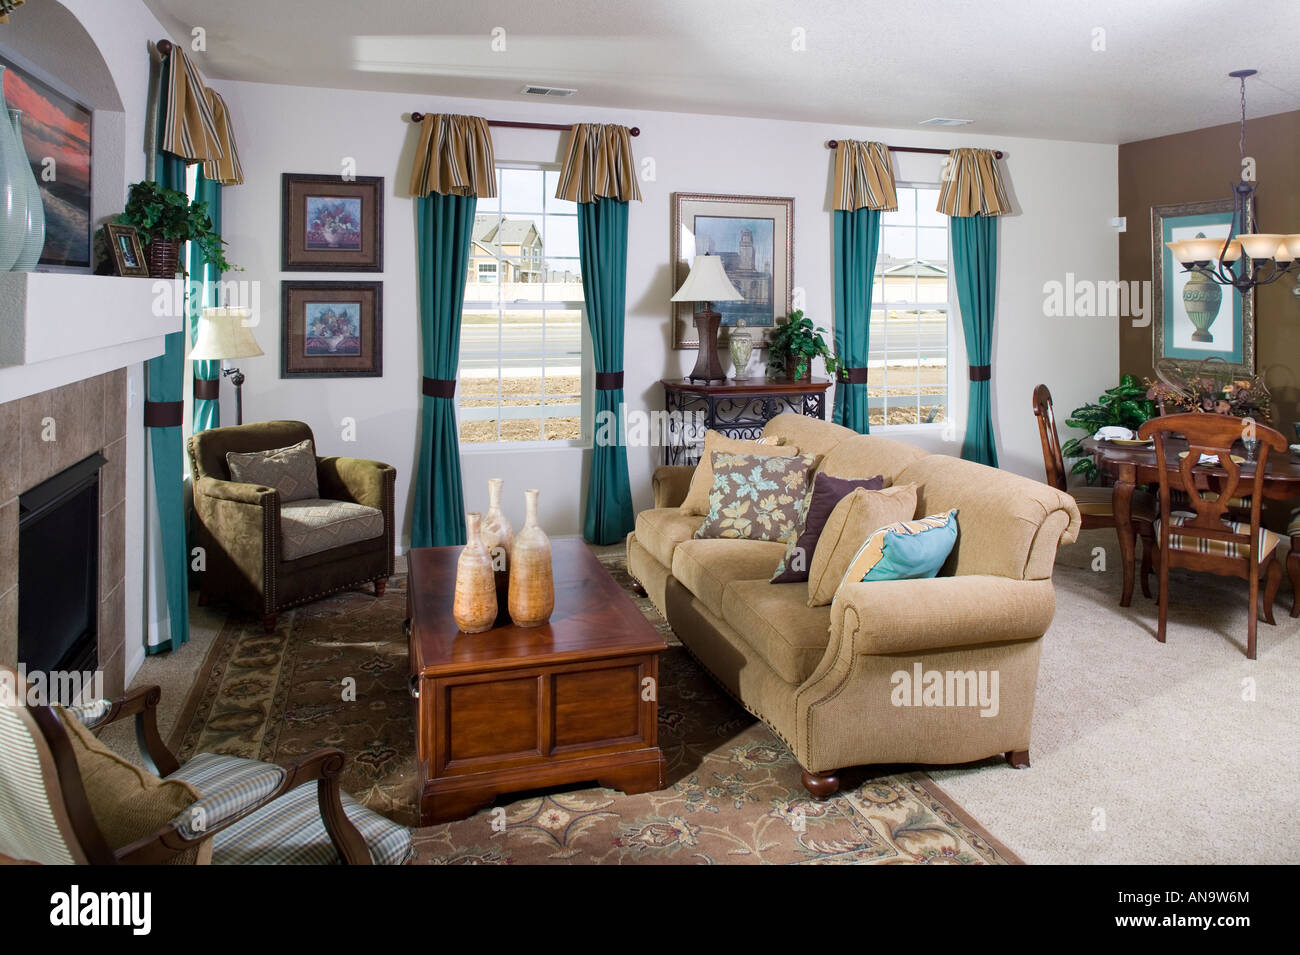 Denver Colorado Real Estate Single Family Home Middle Class Interior Living Room Dining Table And Chairs Nobody